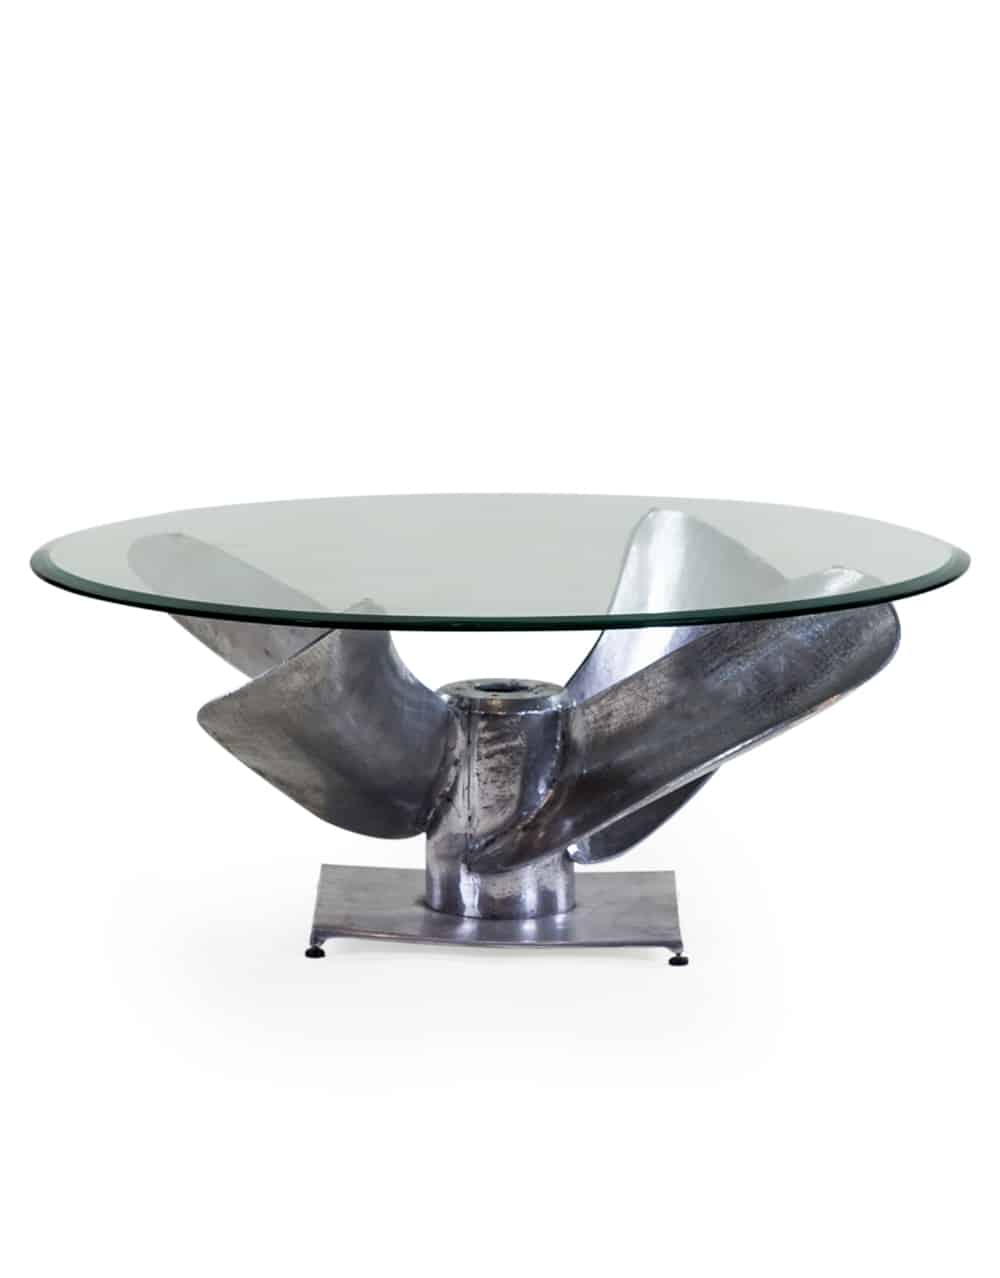 Large Antiqued Aluminium Propeller Glass Coffee Table